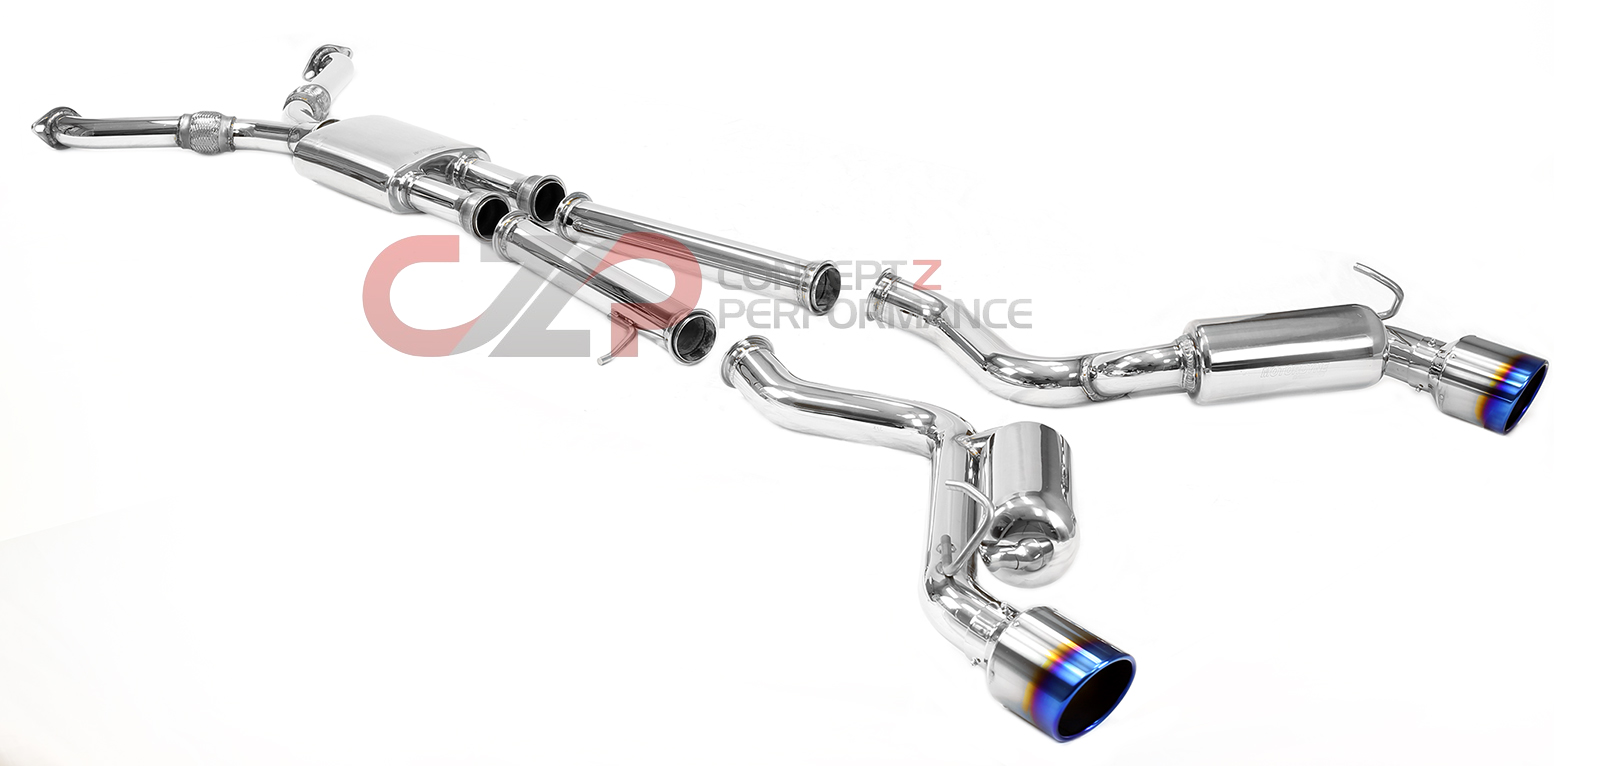 Exhaust System - Concept Z Performance